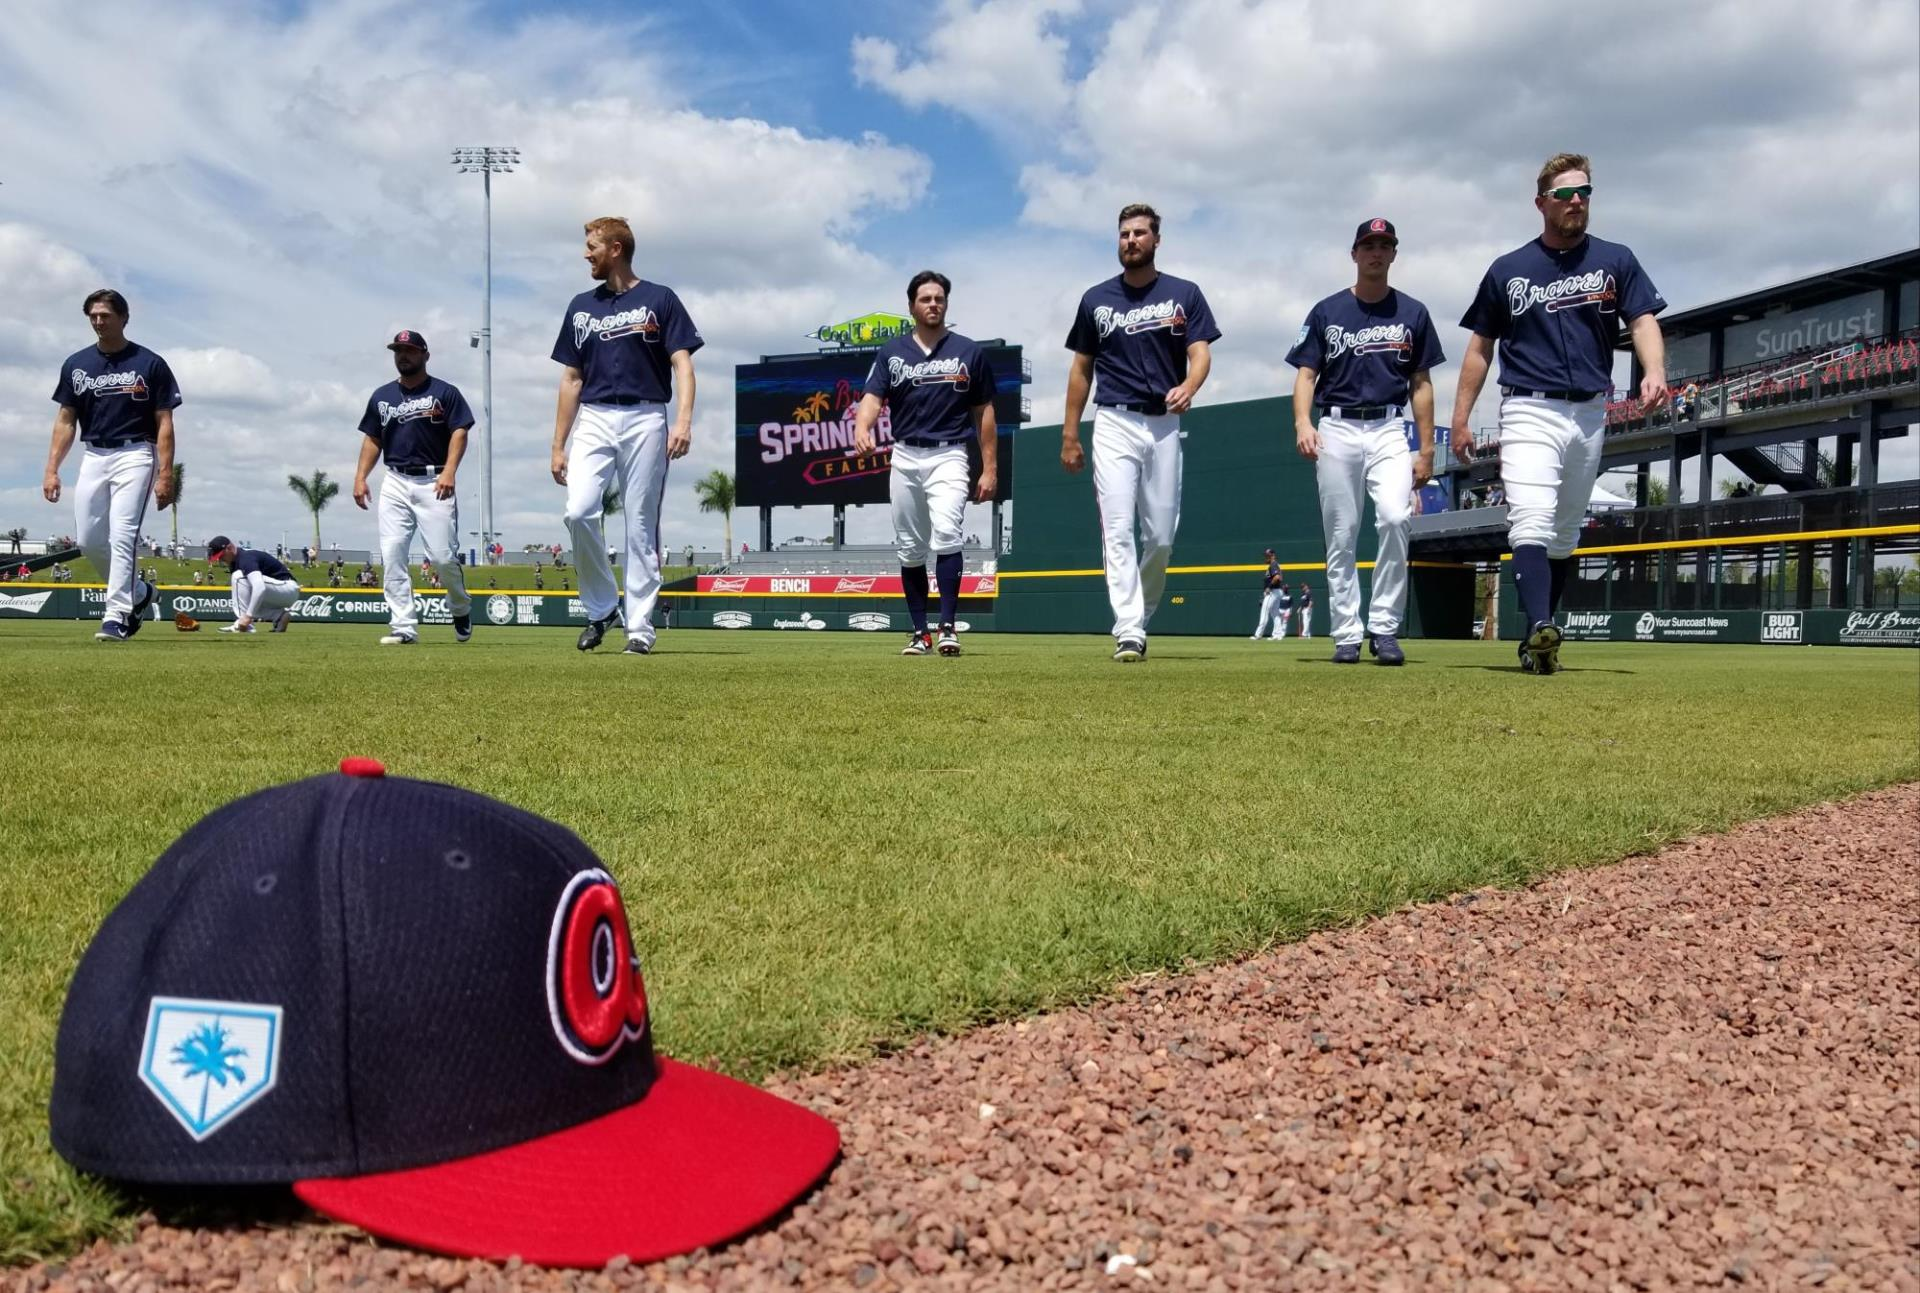 Atlanta Braves players warm up before their first game in the team's new spring training facility in Sarasota County. The field mirrors the team's field in their regular season home in Atlanta.